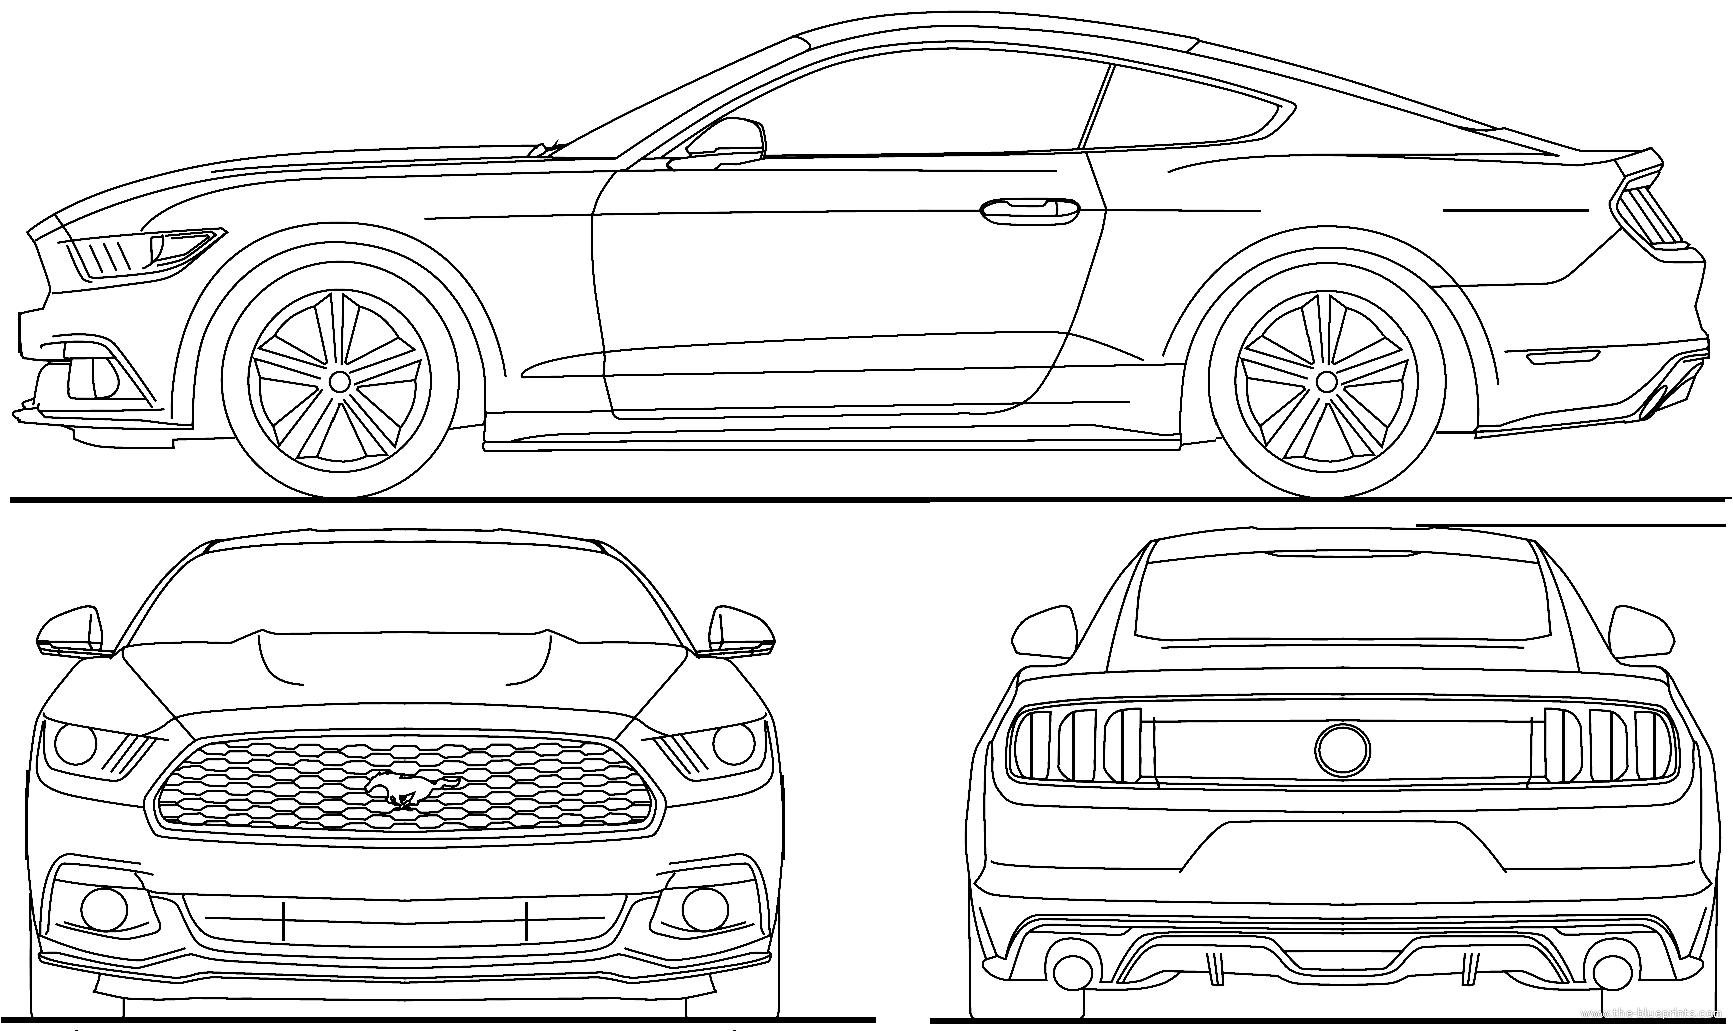 Blueprints > Cars > Ford > Ford Mustang GT (2015)